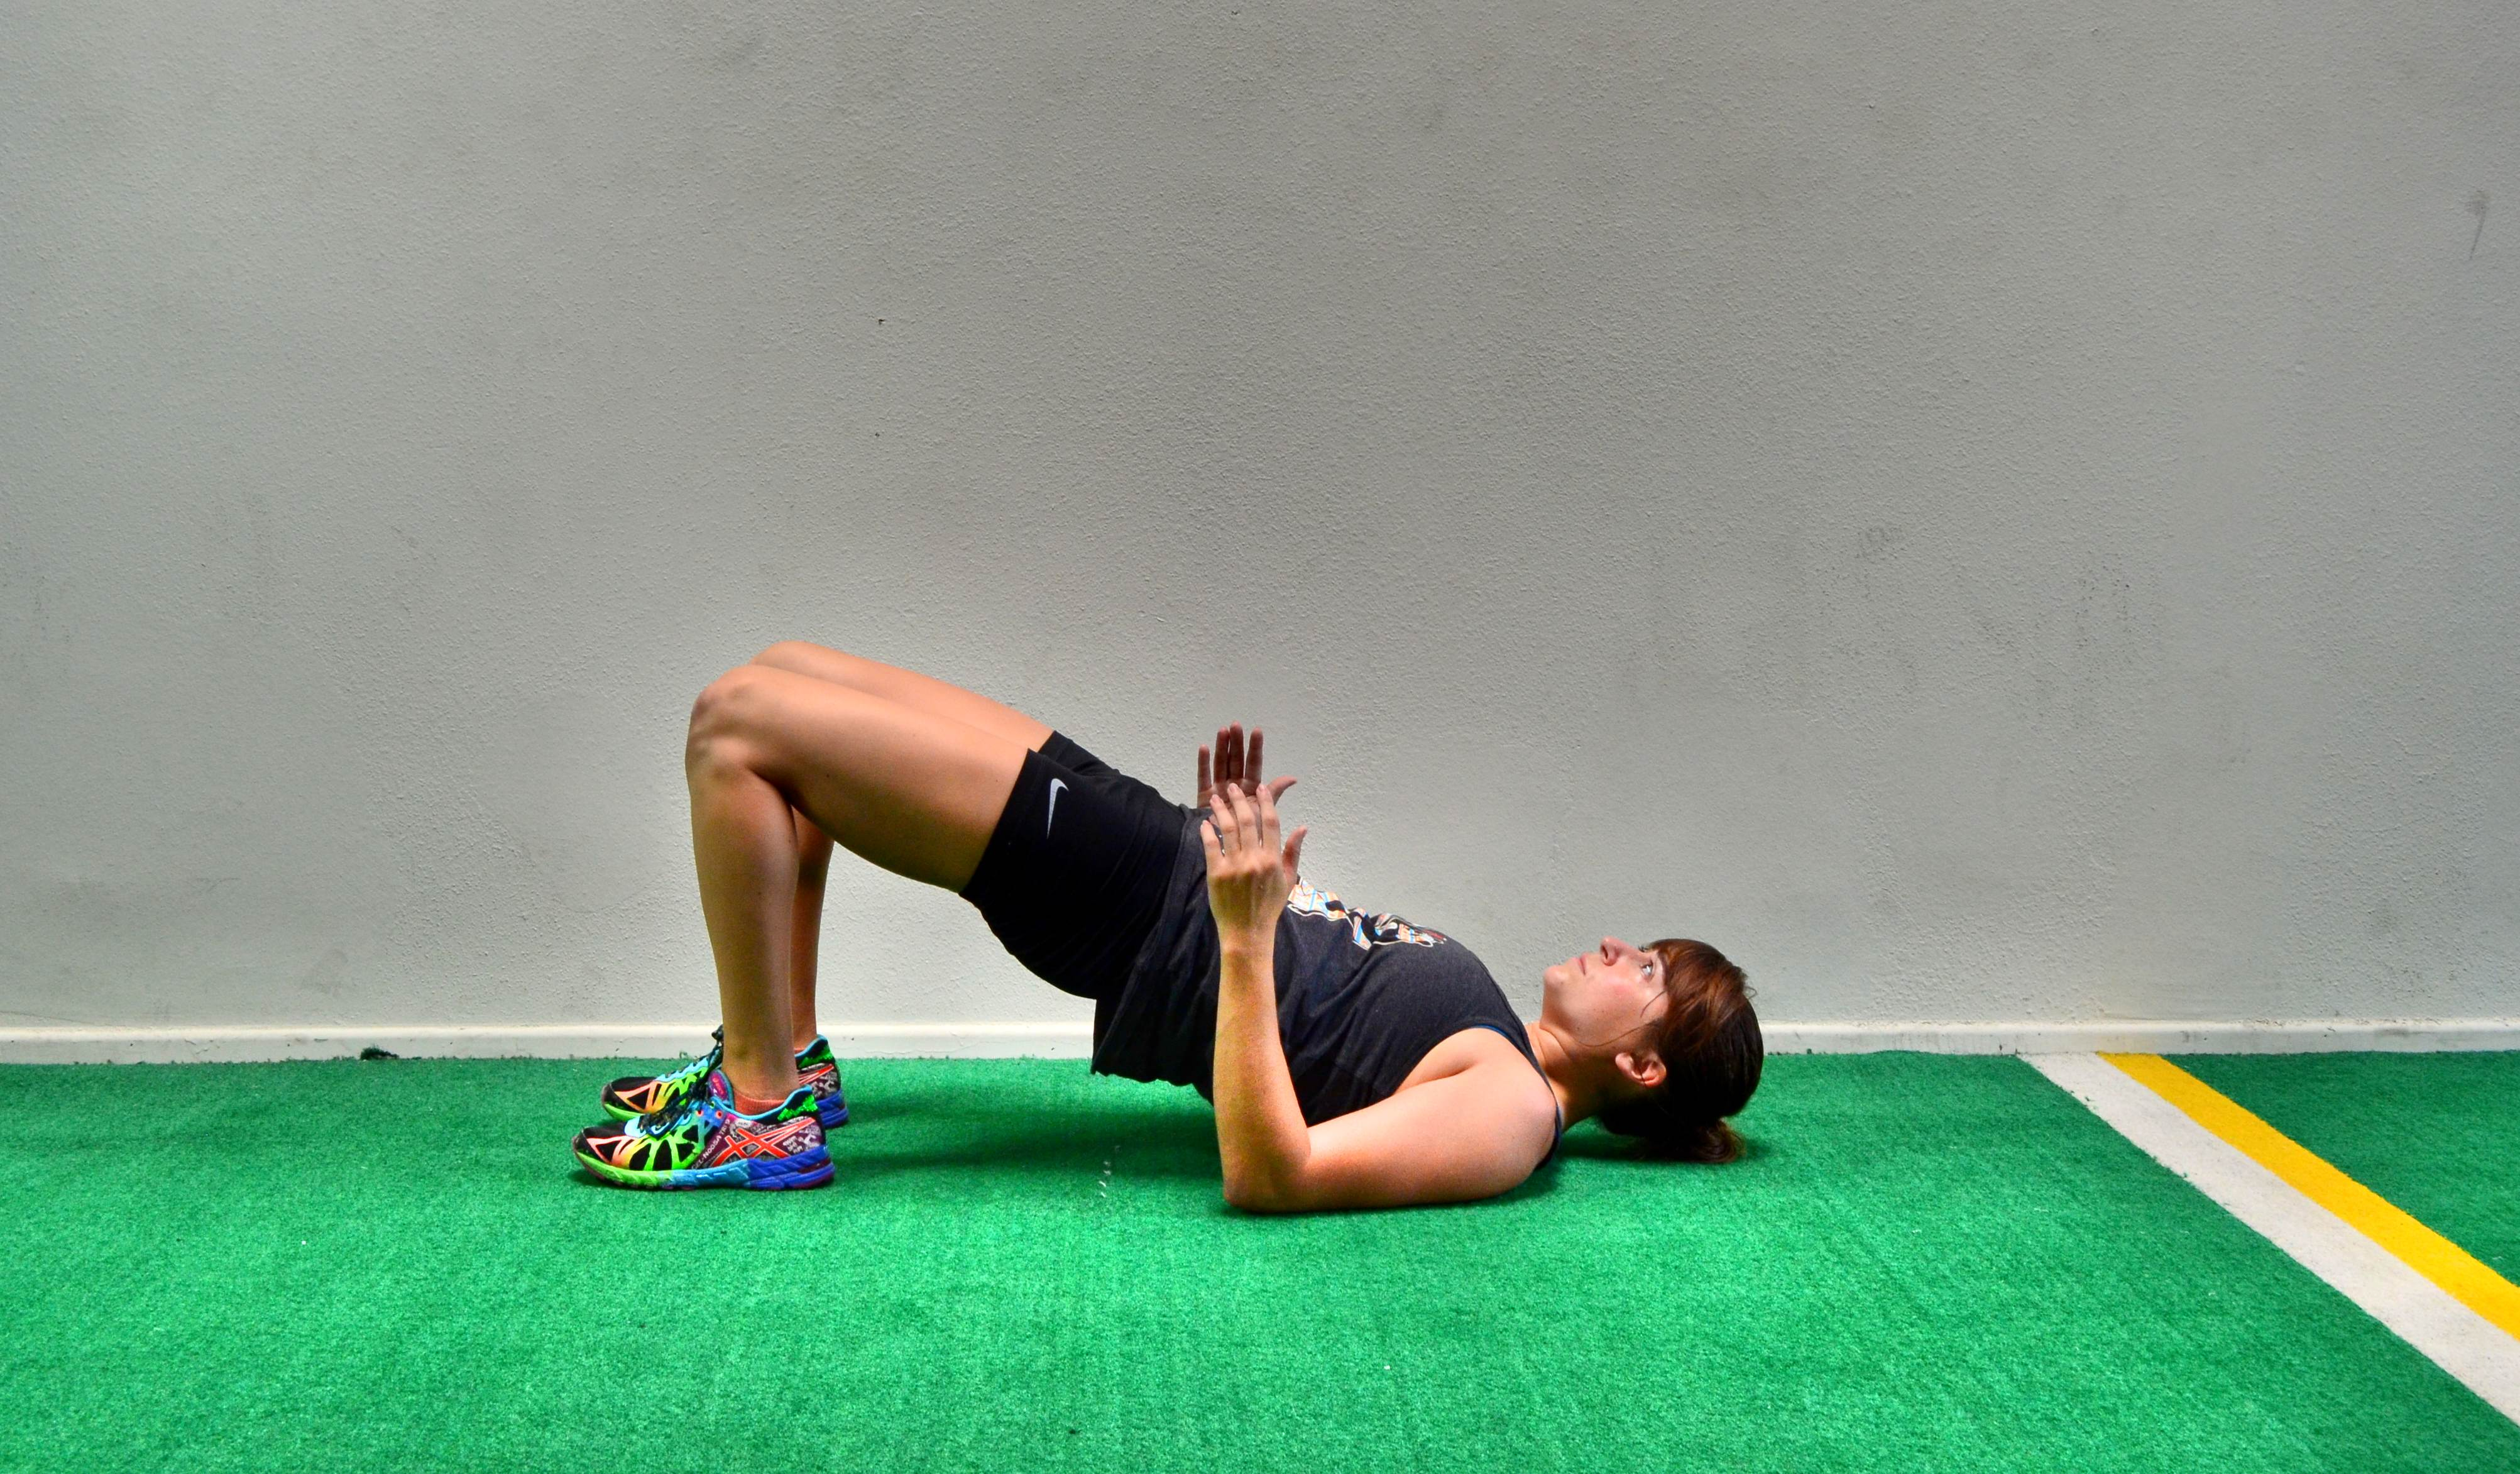 Isometric Moves To Alleviate Pain | Redefining Strength